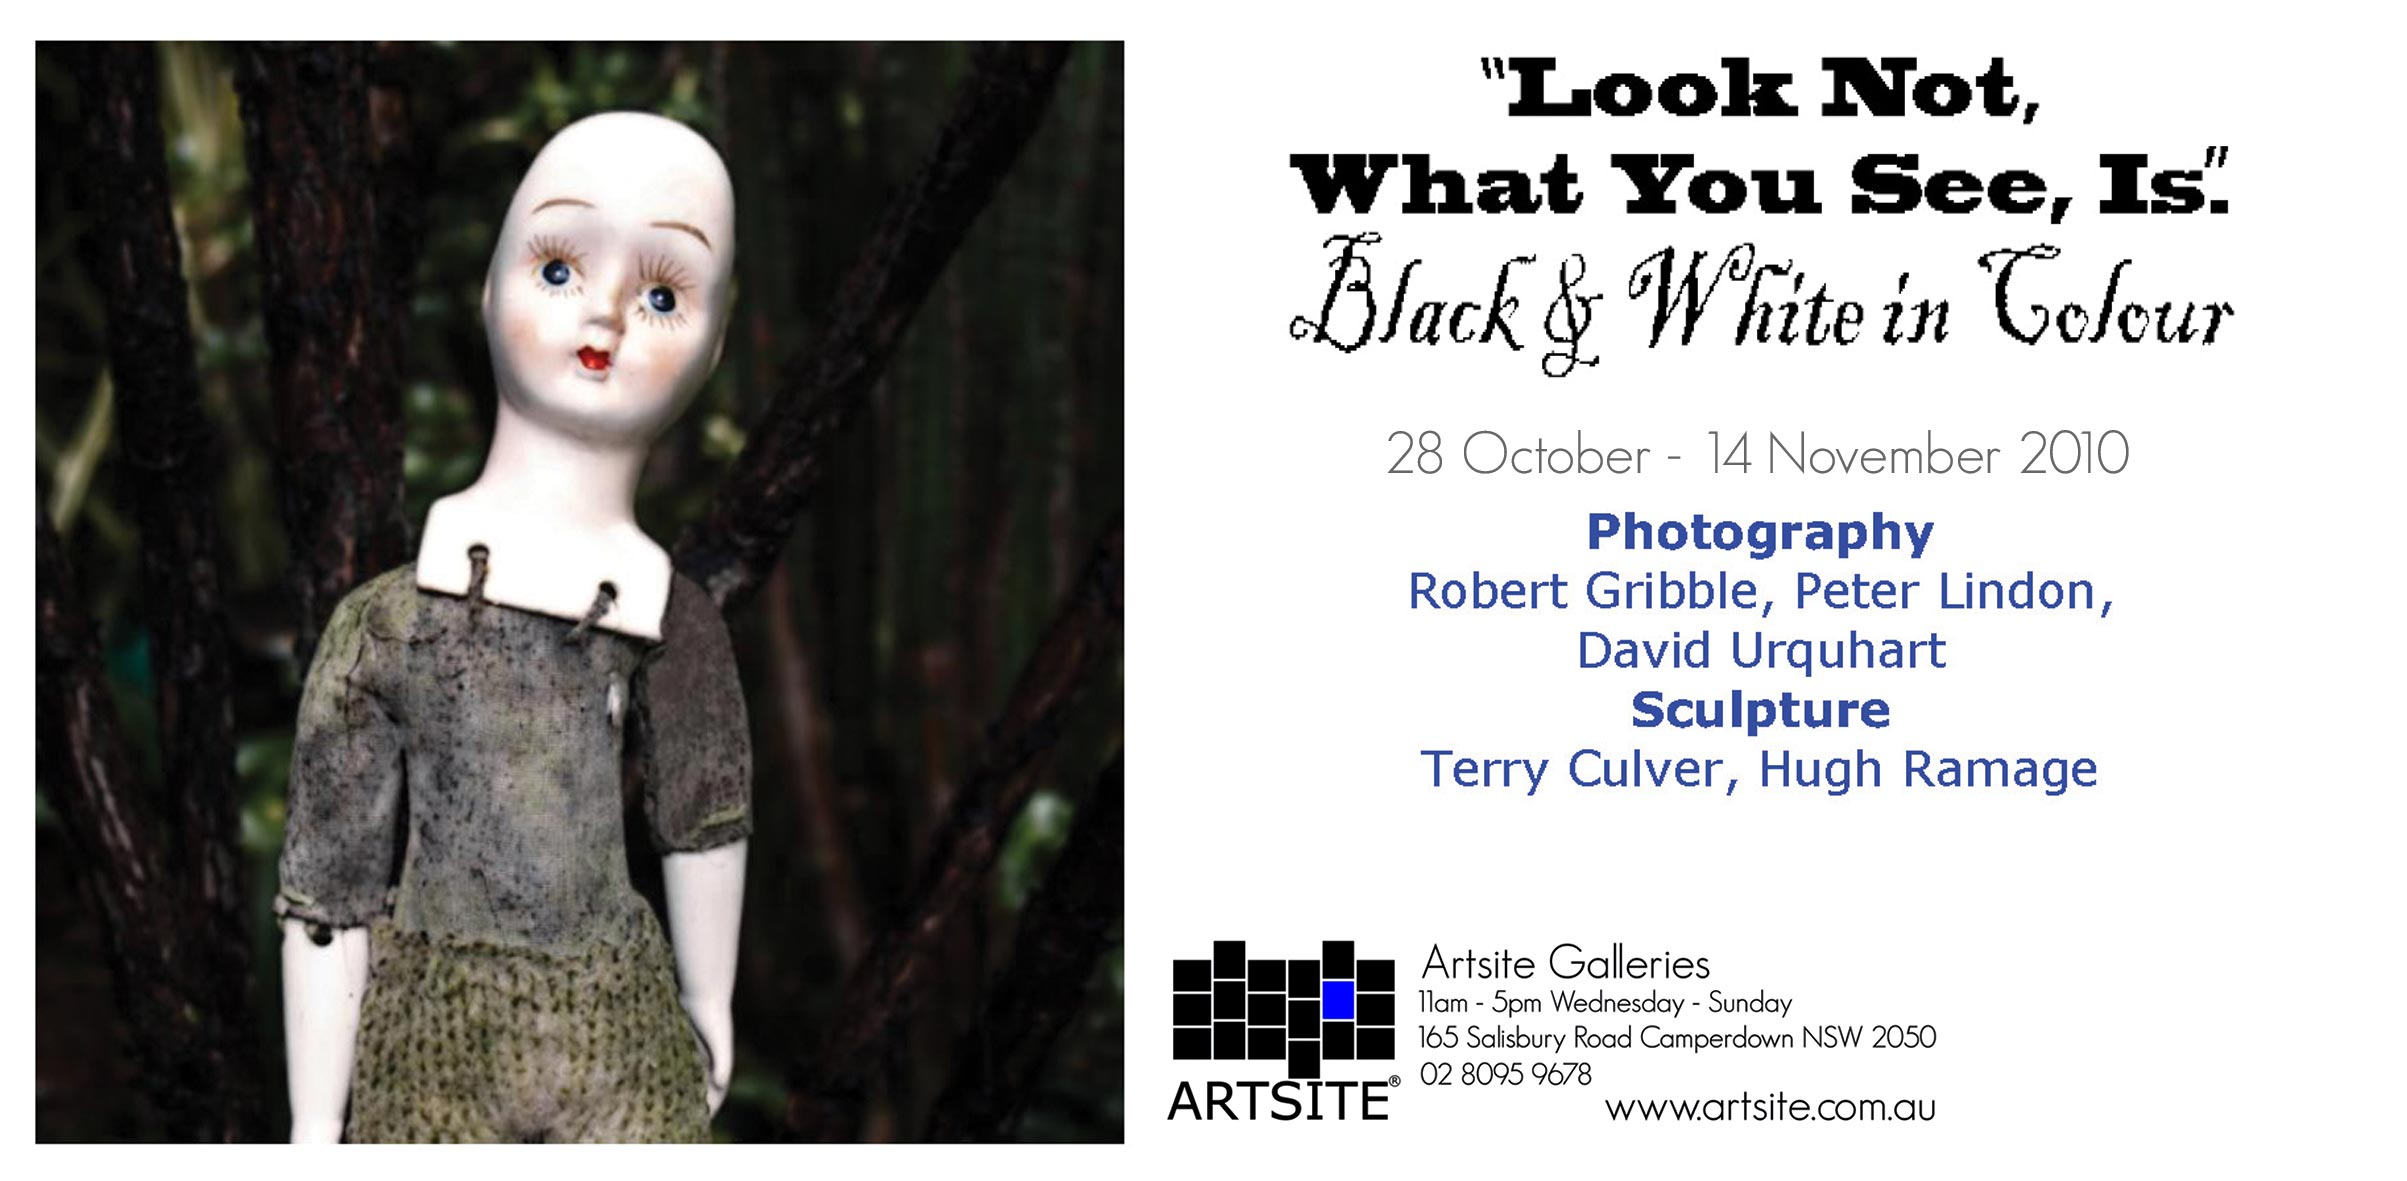 View Exhibition at Artsite Gallery, Sydney: 30 October - 14 November 2010. LOOK NOT, What you See - Is! Photography: Robert Gribble; Peter Lindon; David Urquhart. Sculpture: Terry Culver; Hugh Ramage.